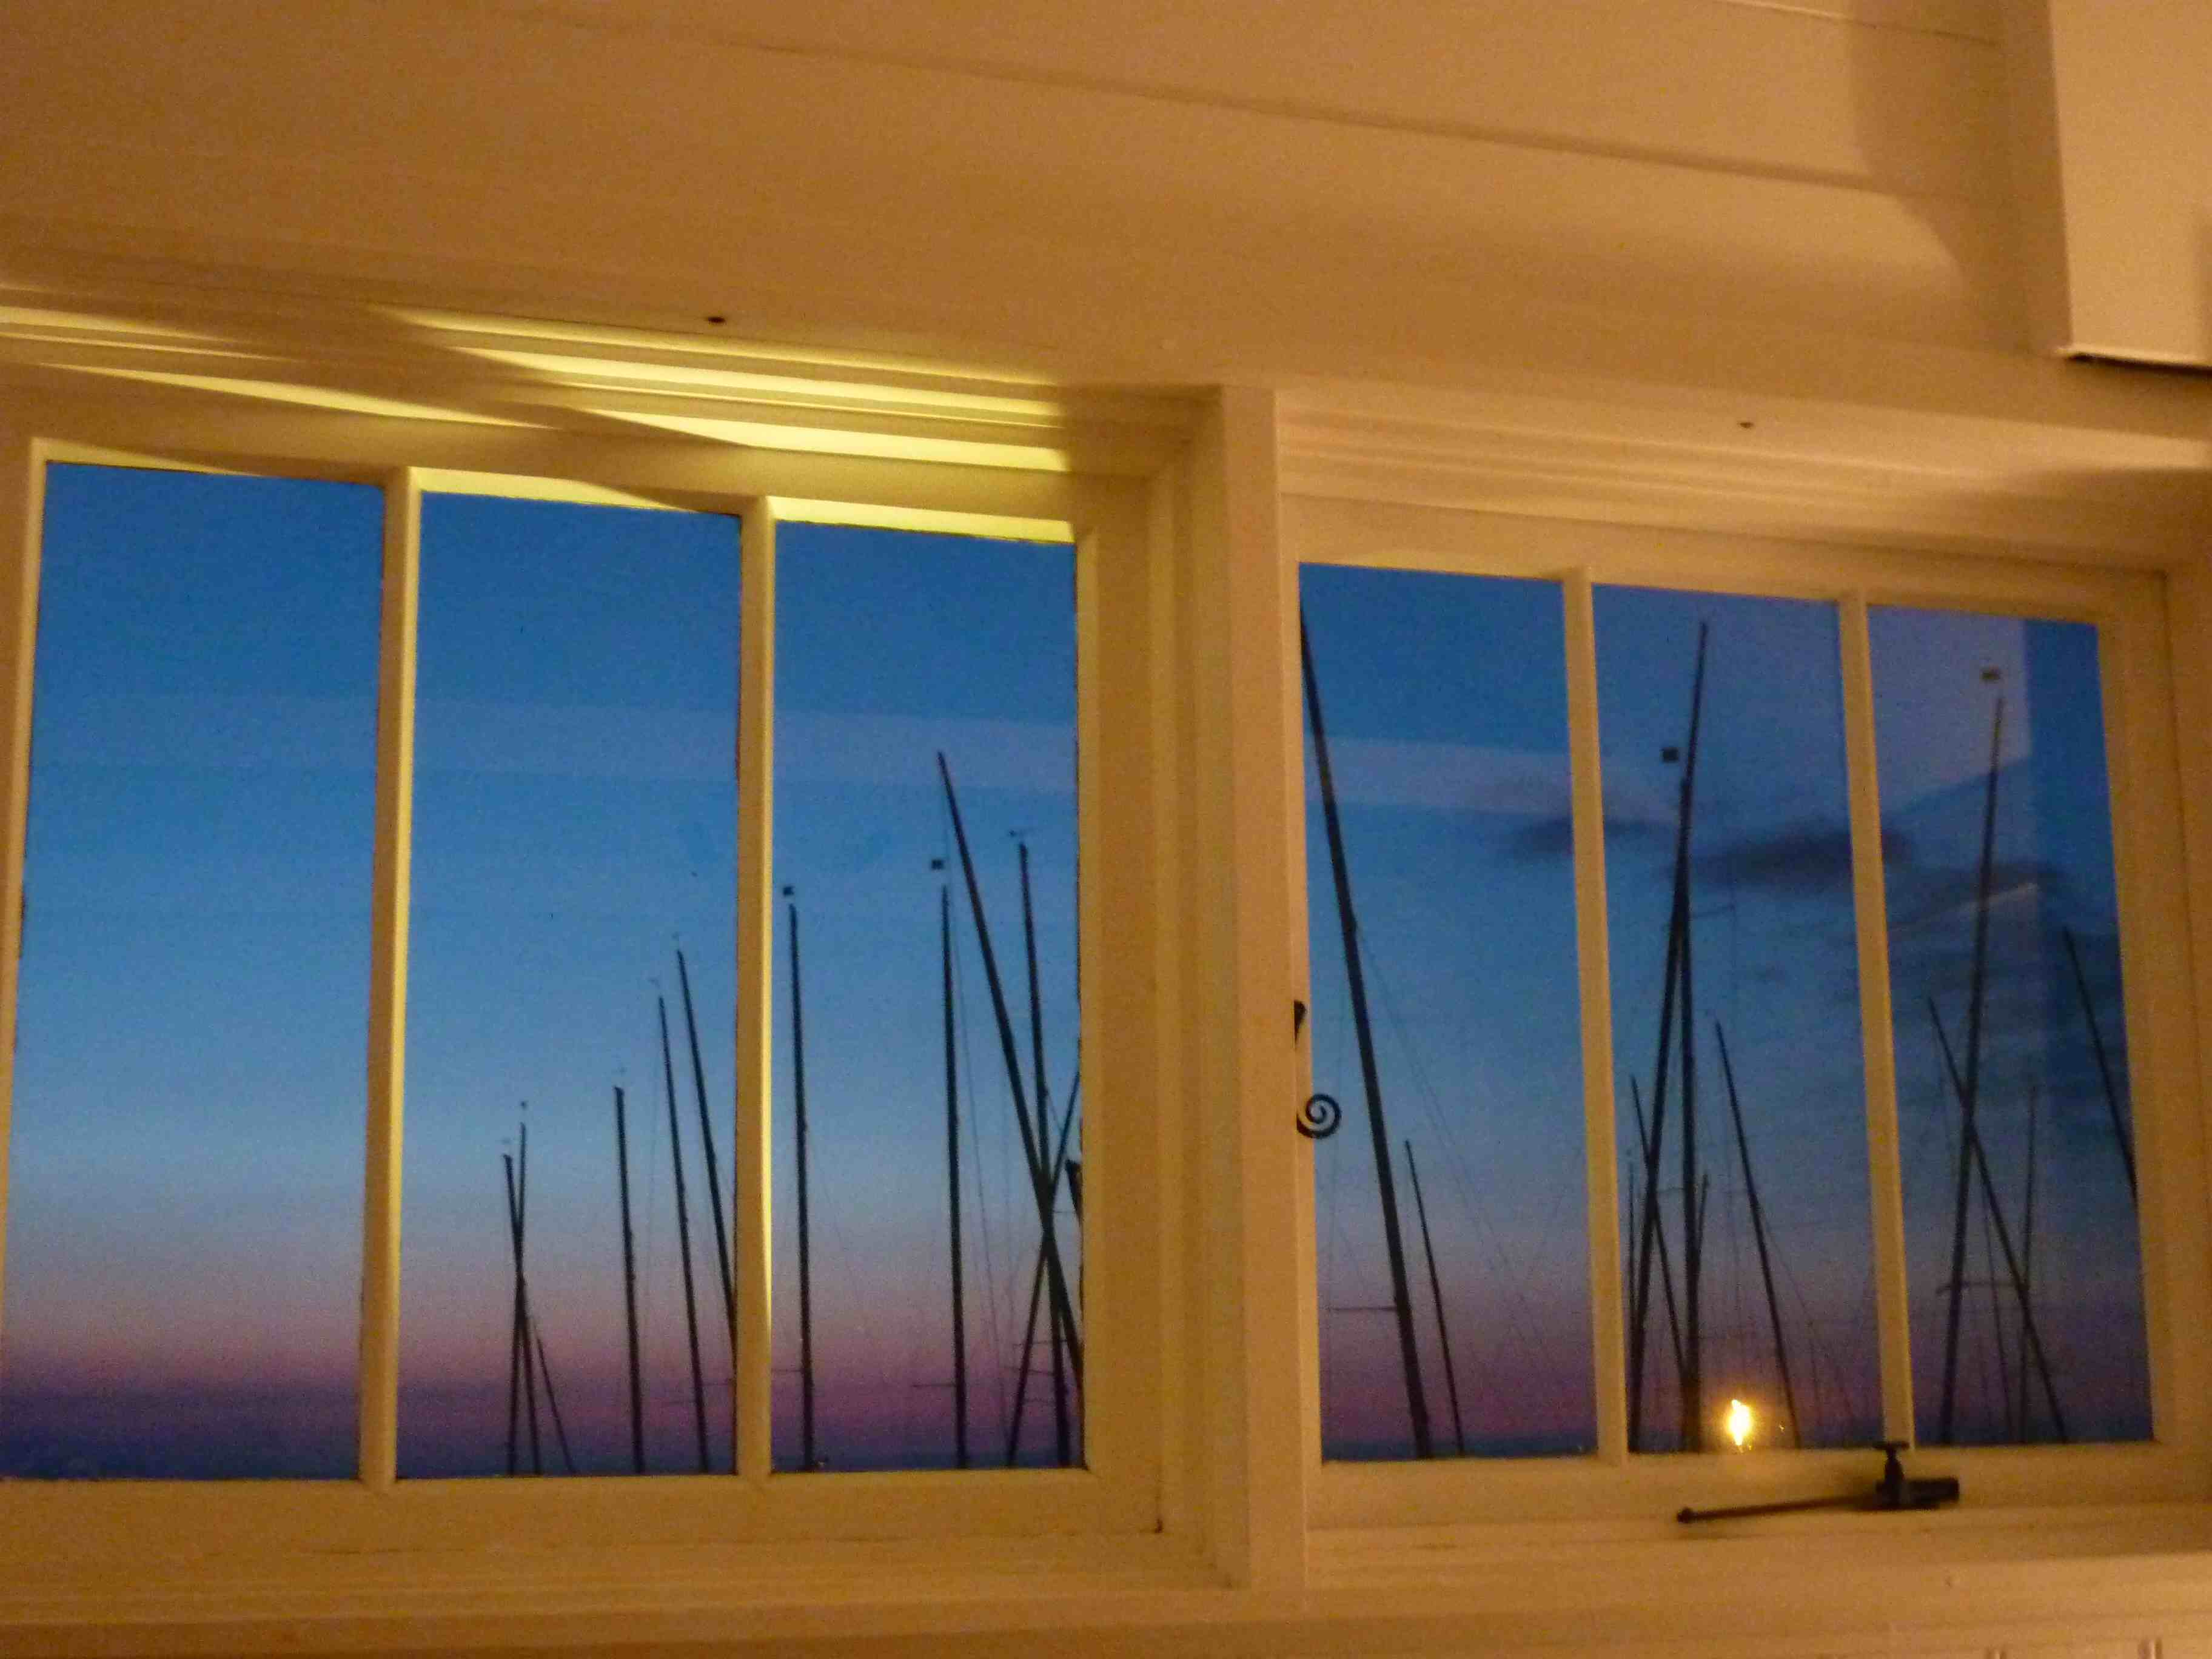 fisherman's hut window